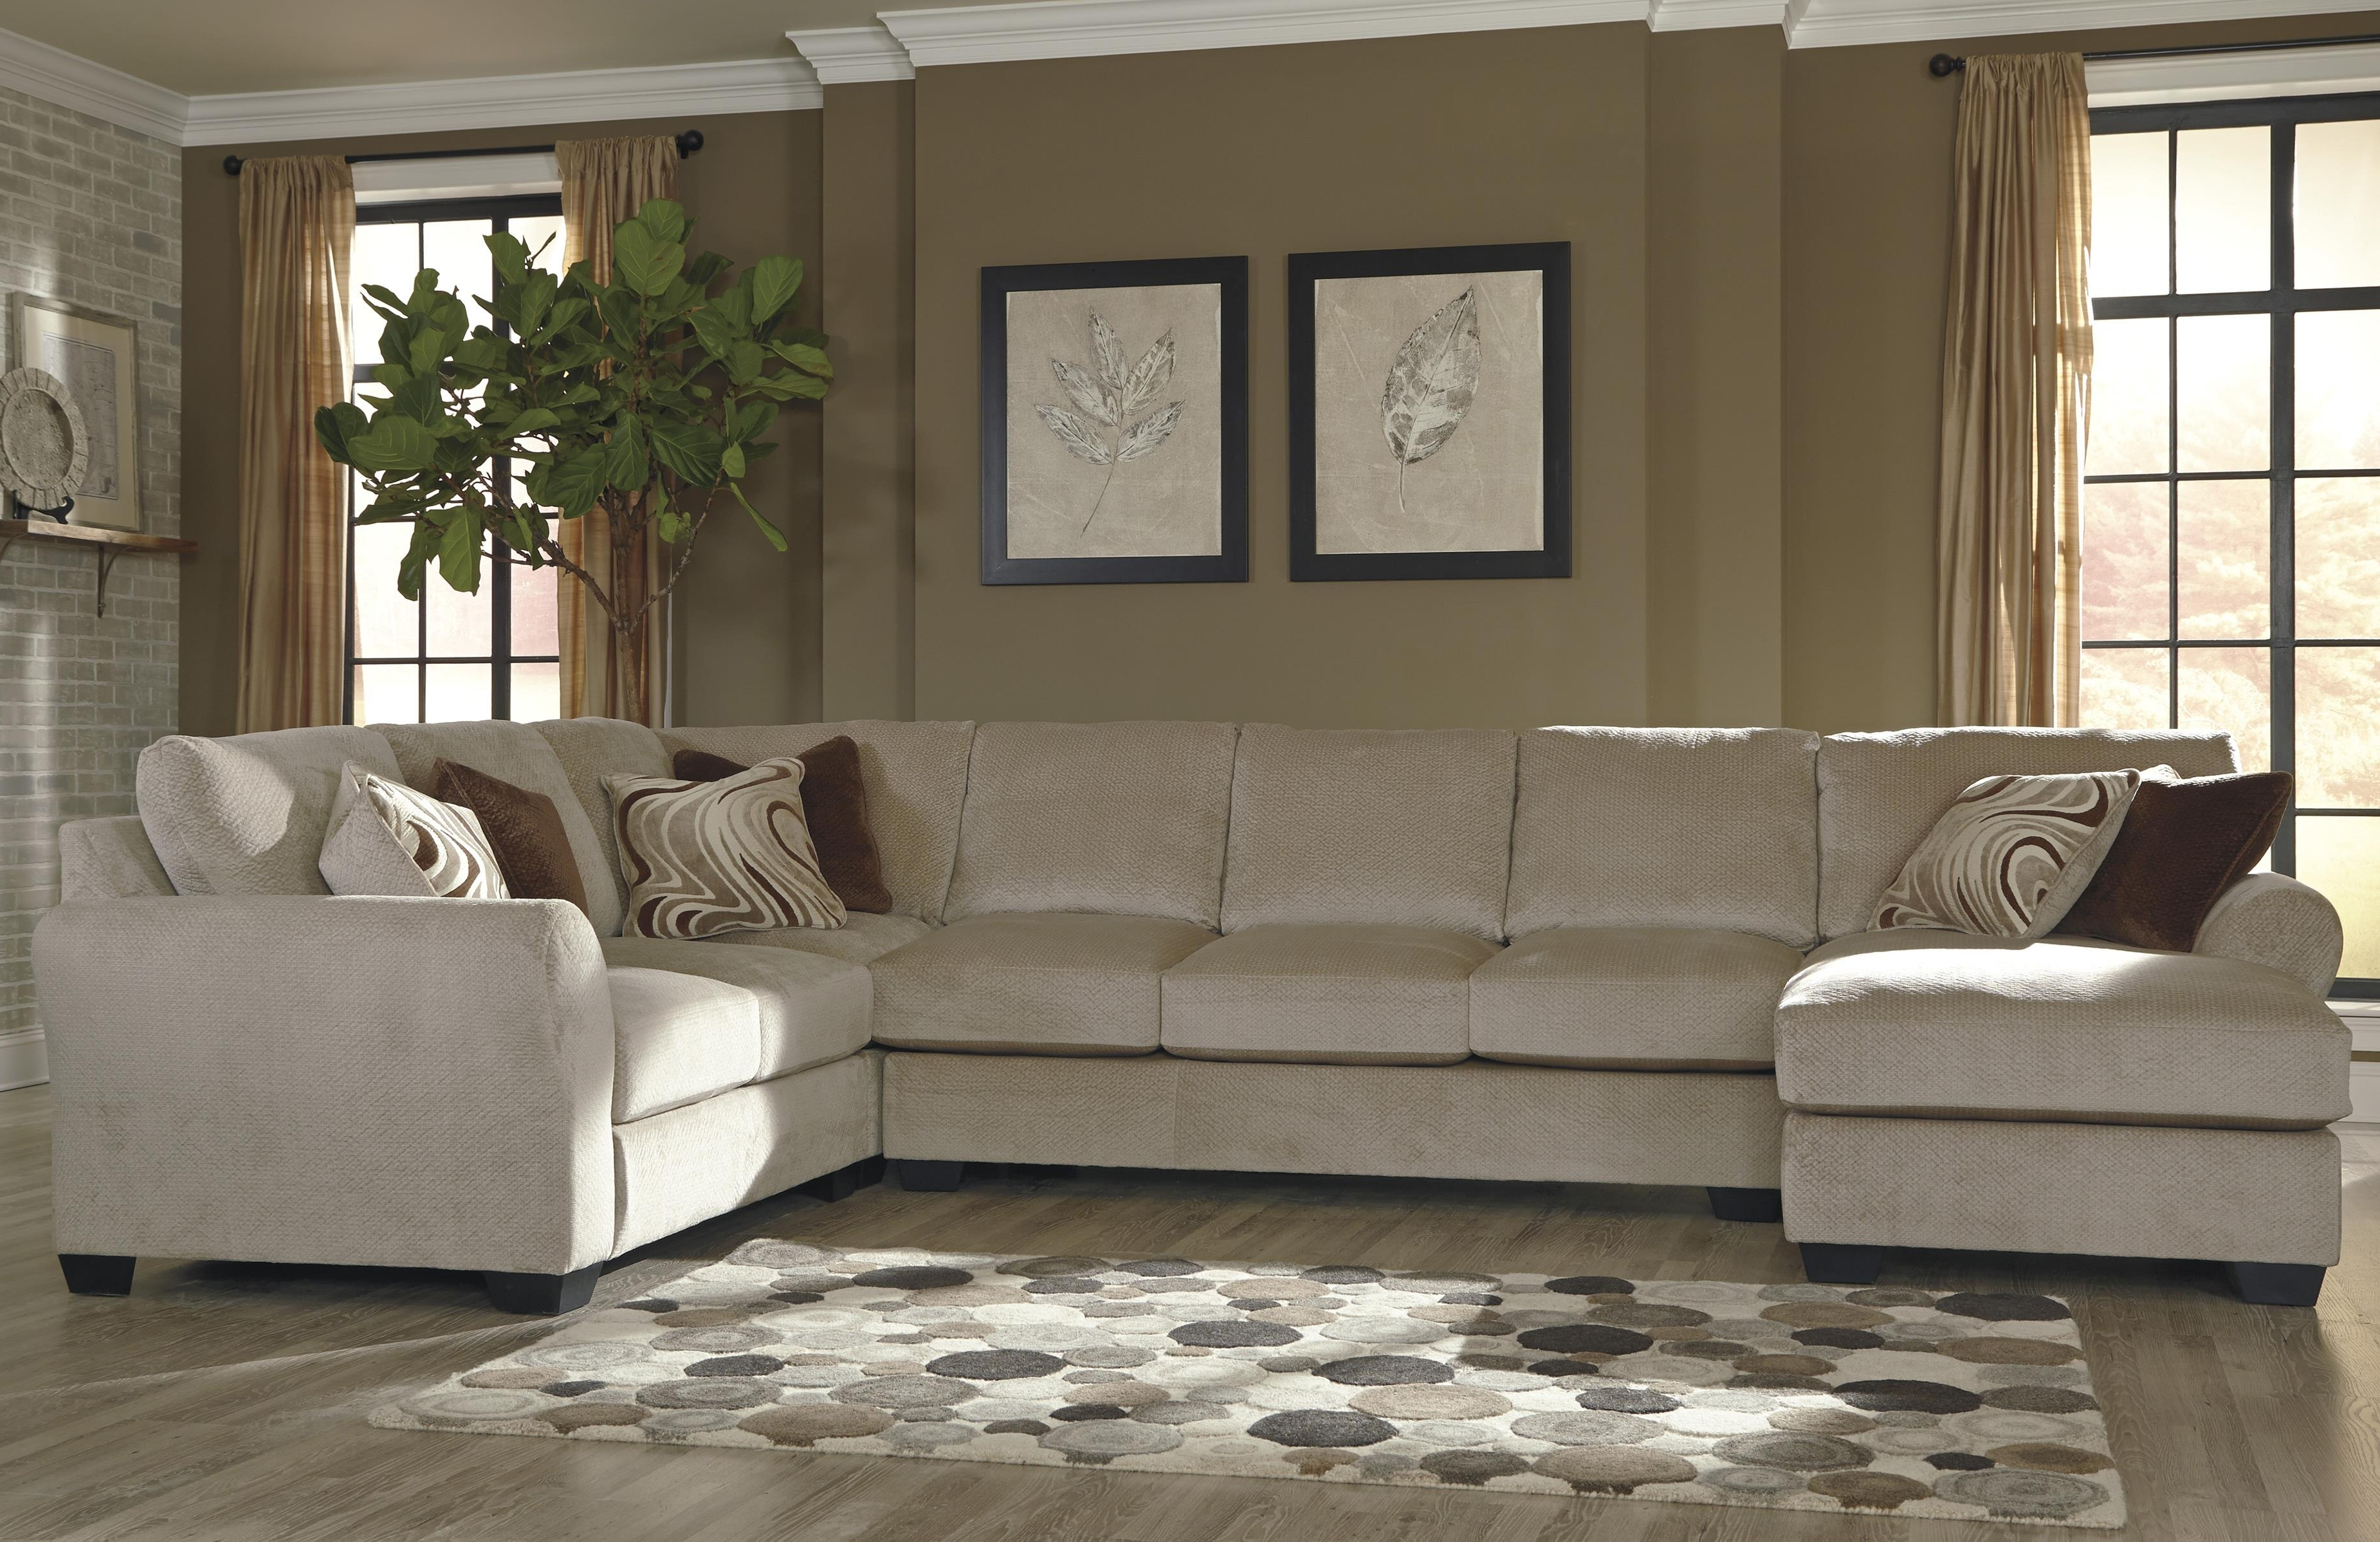 Well Known 4 Piece Sectional W/ Armless Sofa & Left Chaisebenchcraft Regarding 4 Piece Sectional Sofas With Chaise (View 8 of 15)